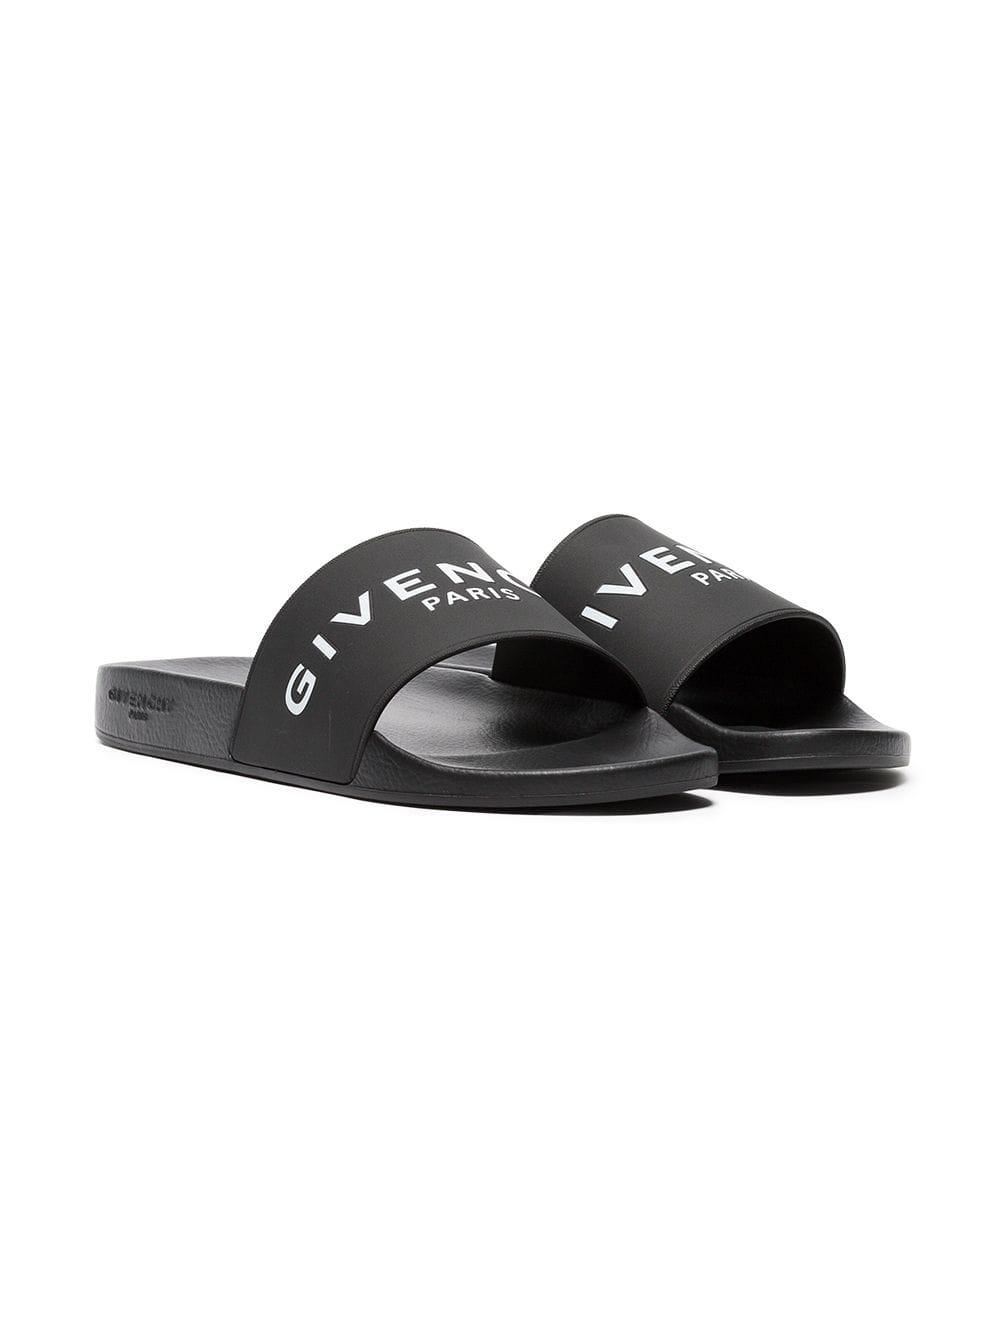 538c2b45108a7 Givenchy - Black Logo-print Rubber Slides for Men - Lyst. View fullscreen